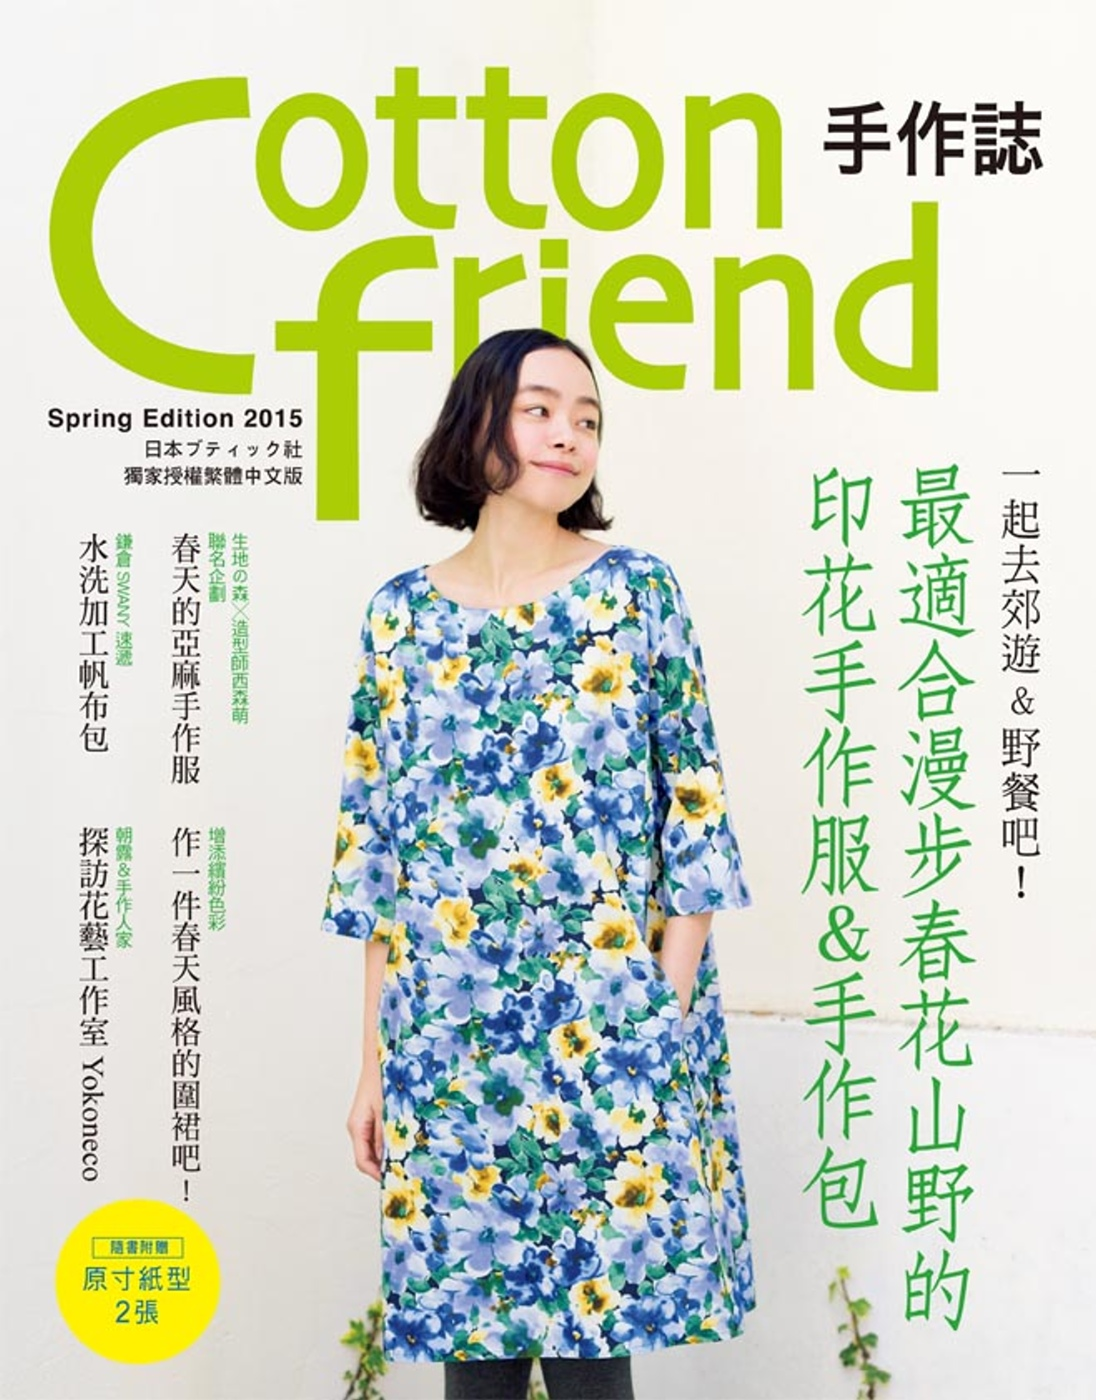 Cotton friend 手作誌28:一起去郊遊&野餐吧!最適合漫步春花山野的印花手作服&手作包